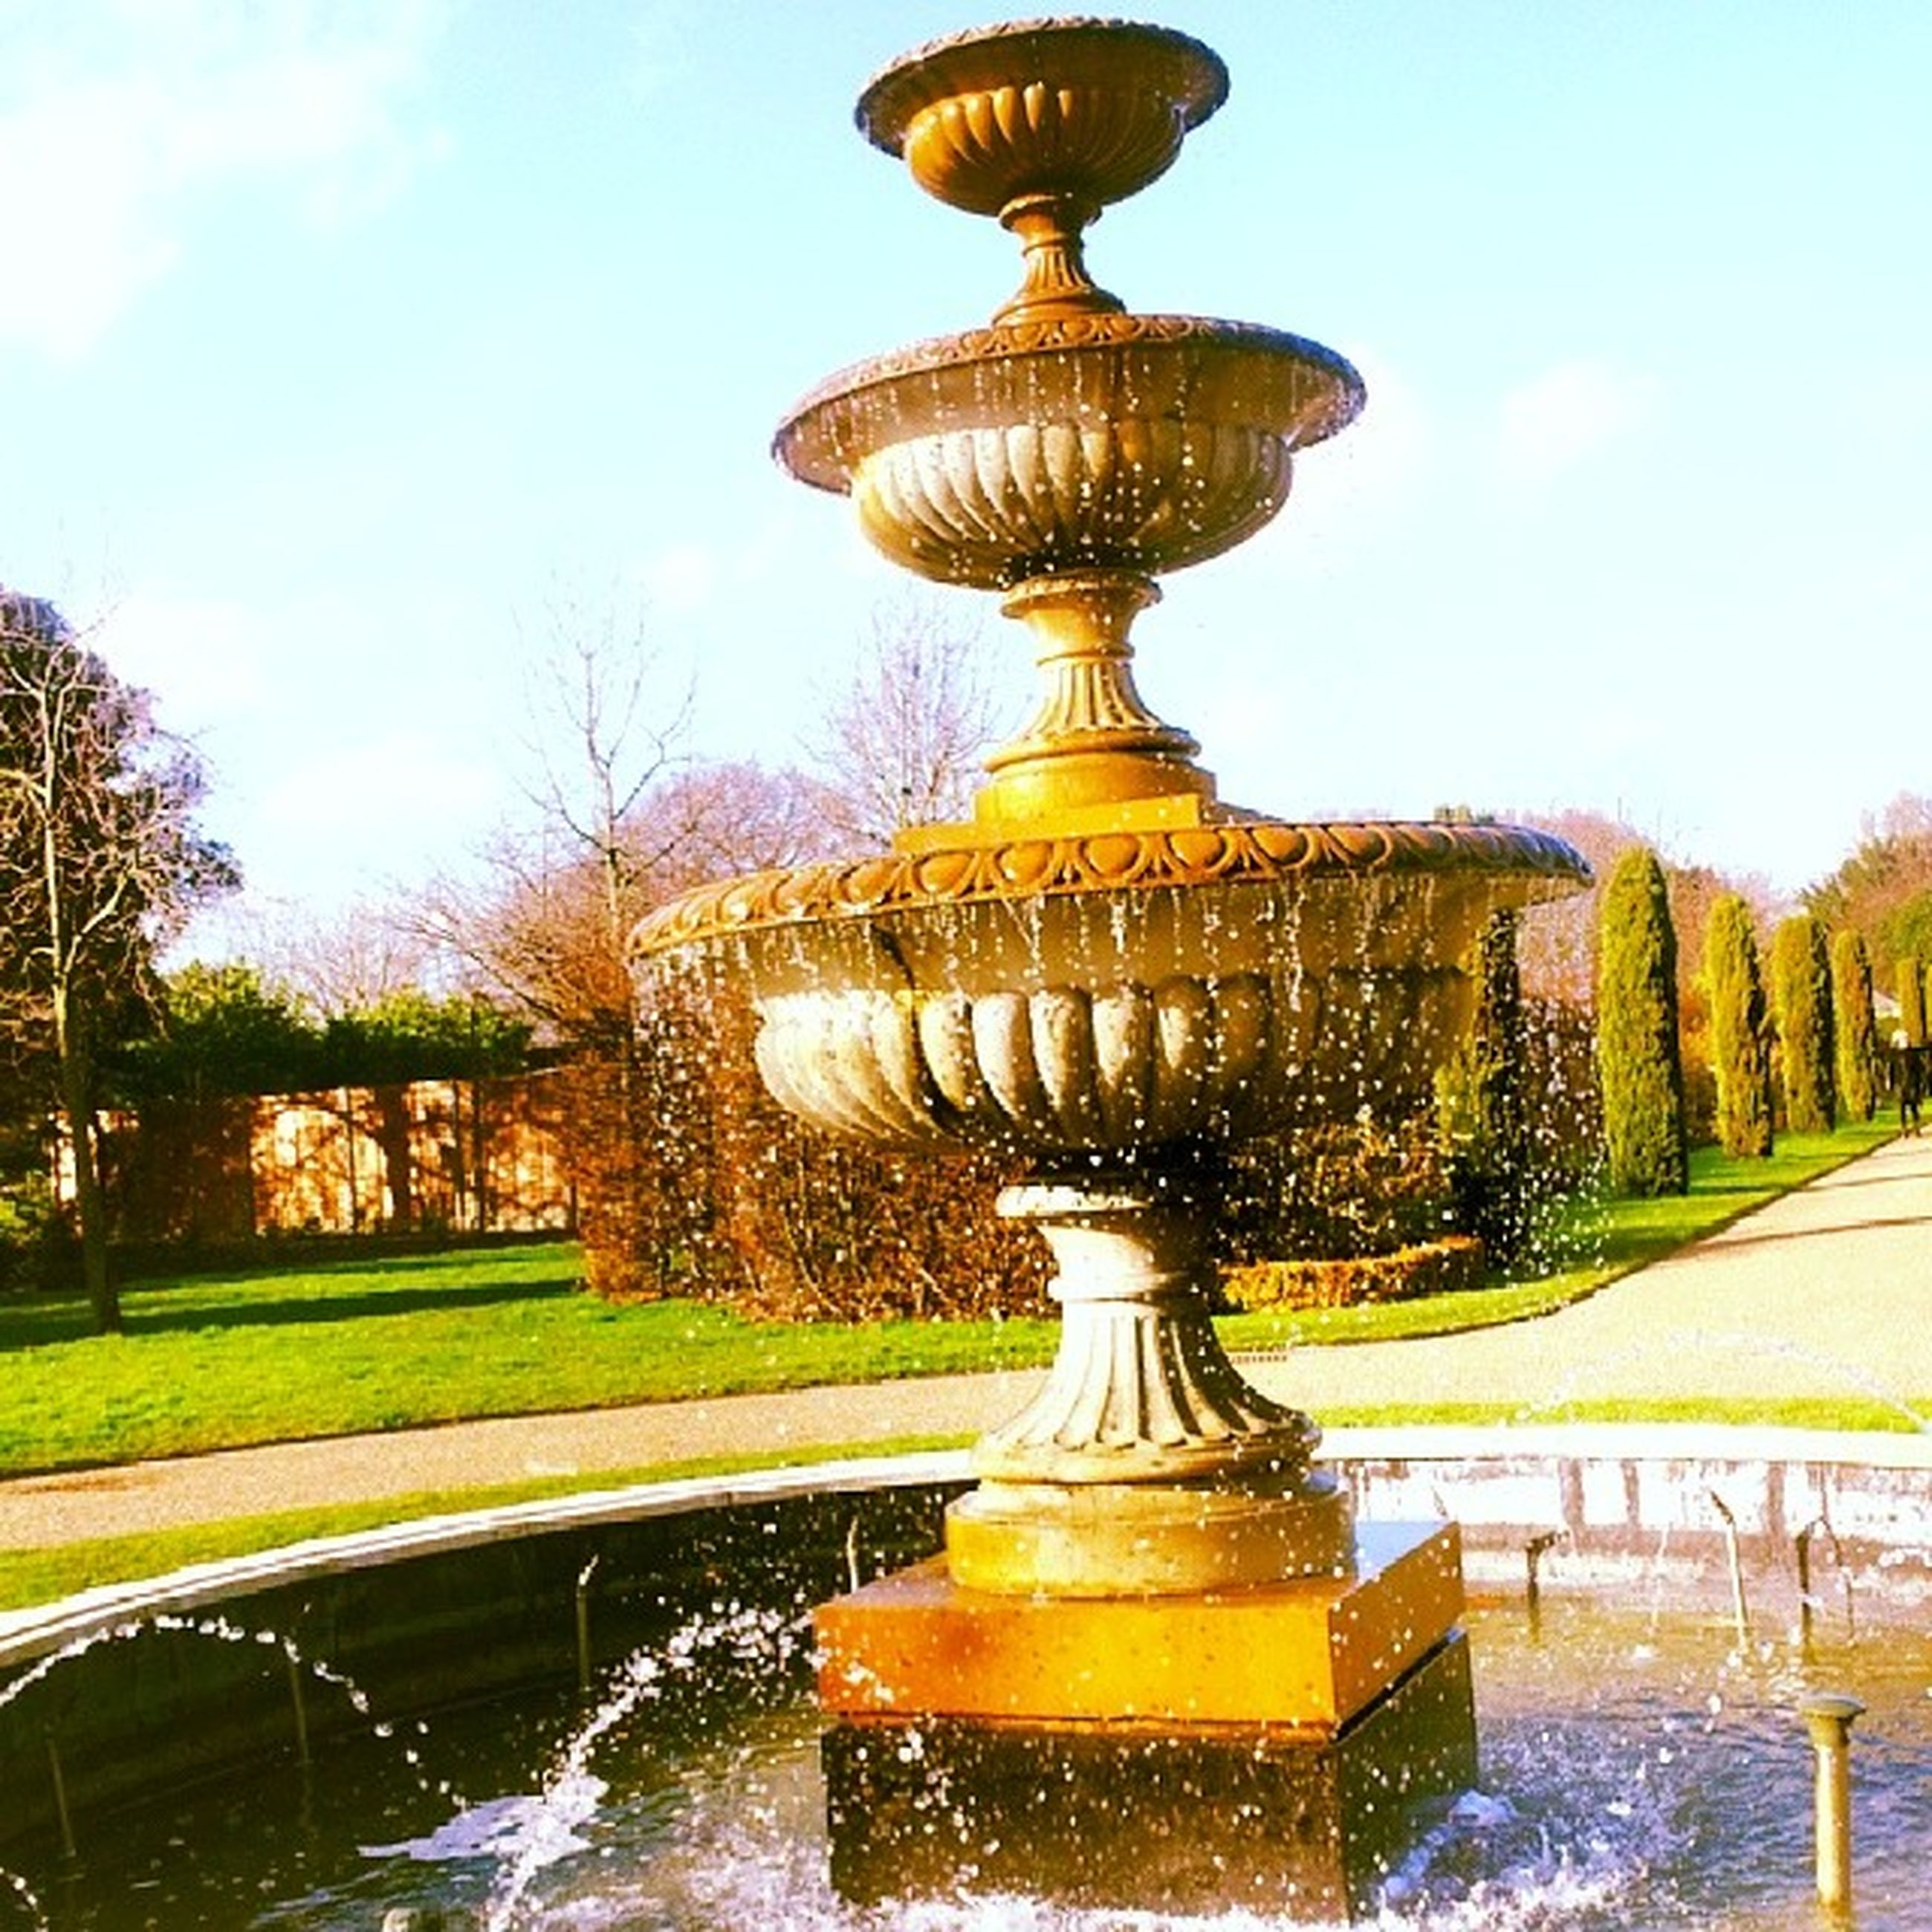 fountain, architecture, built structure, statue, art and craft, building exterior, tree, water, art, sculpture, sky, creativity, human representation, dome, reflection, travel destinations, pond, famous place, religion, park - man made space